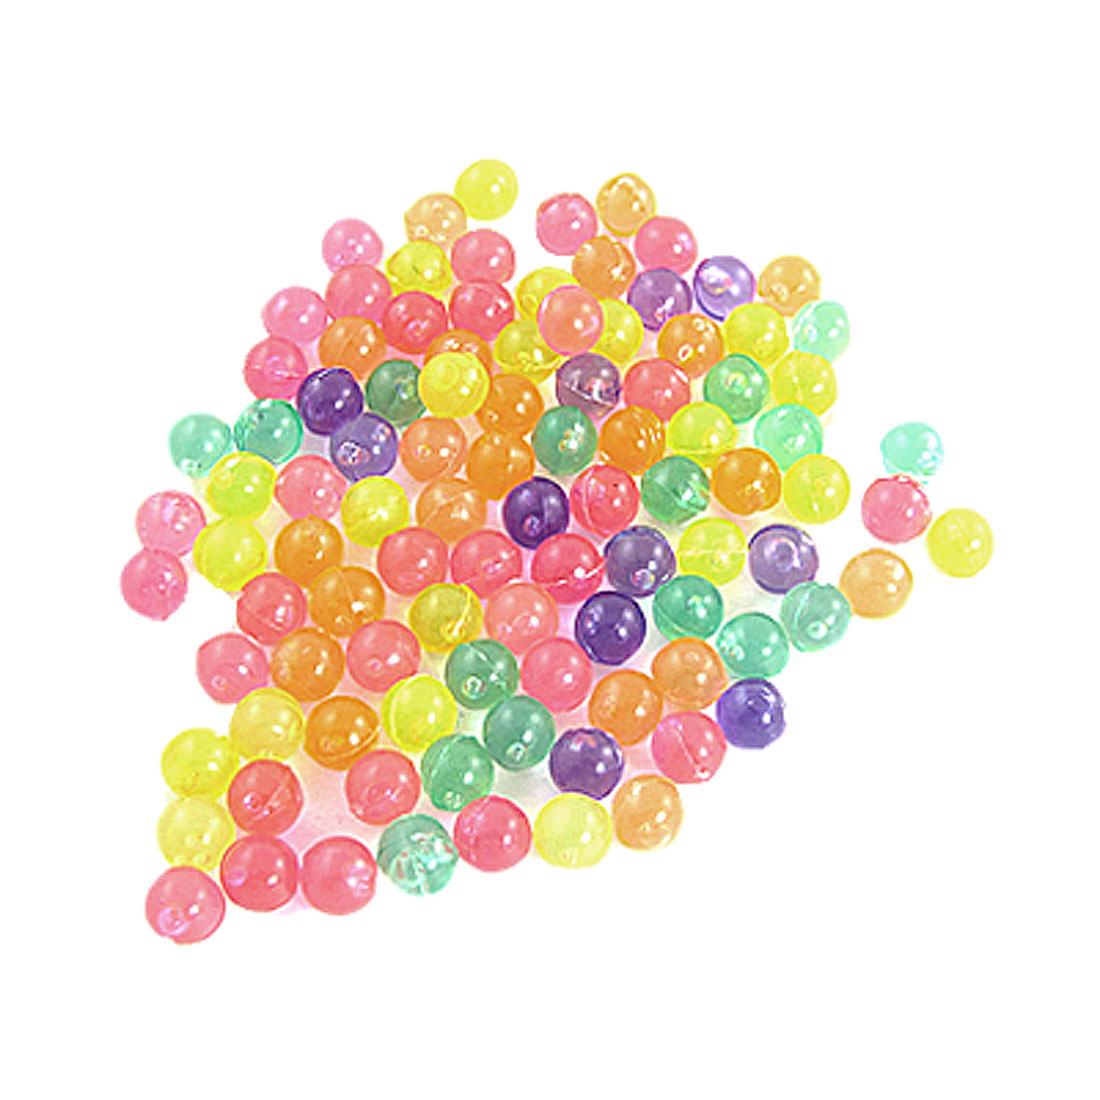 "Aquarium en plastique coloré 0, 3"" de diamètre 99 pcs Perles"